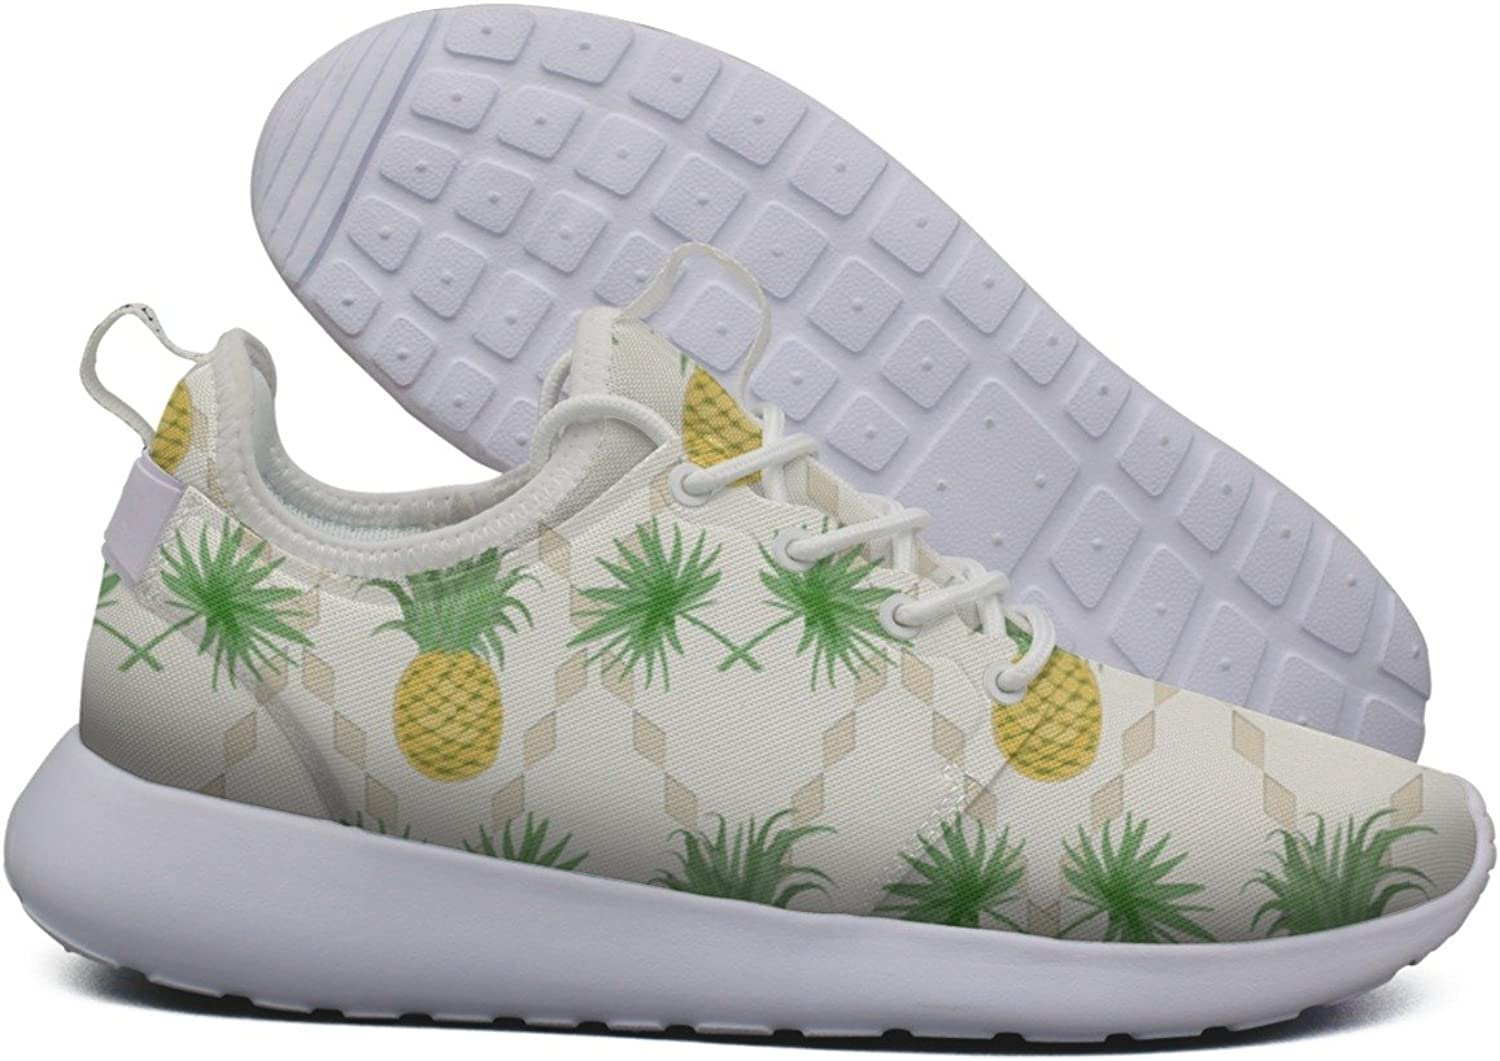 Pineapple and Palm Leaves Women's Lightweight Mesh Tennis Sneakers Designer Basketball shoes